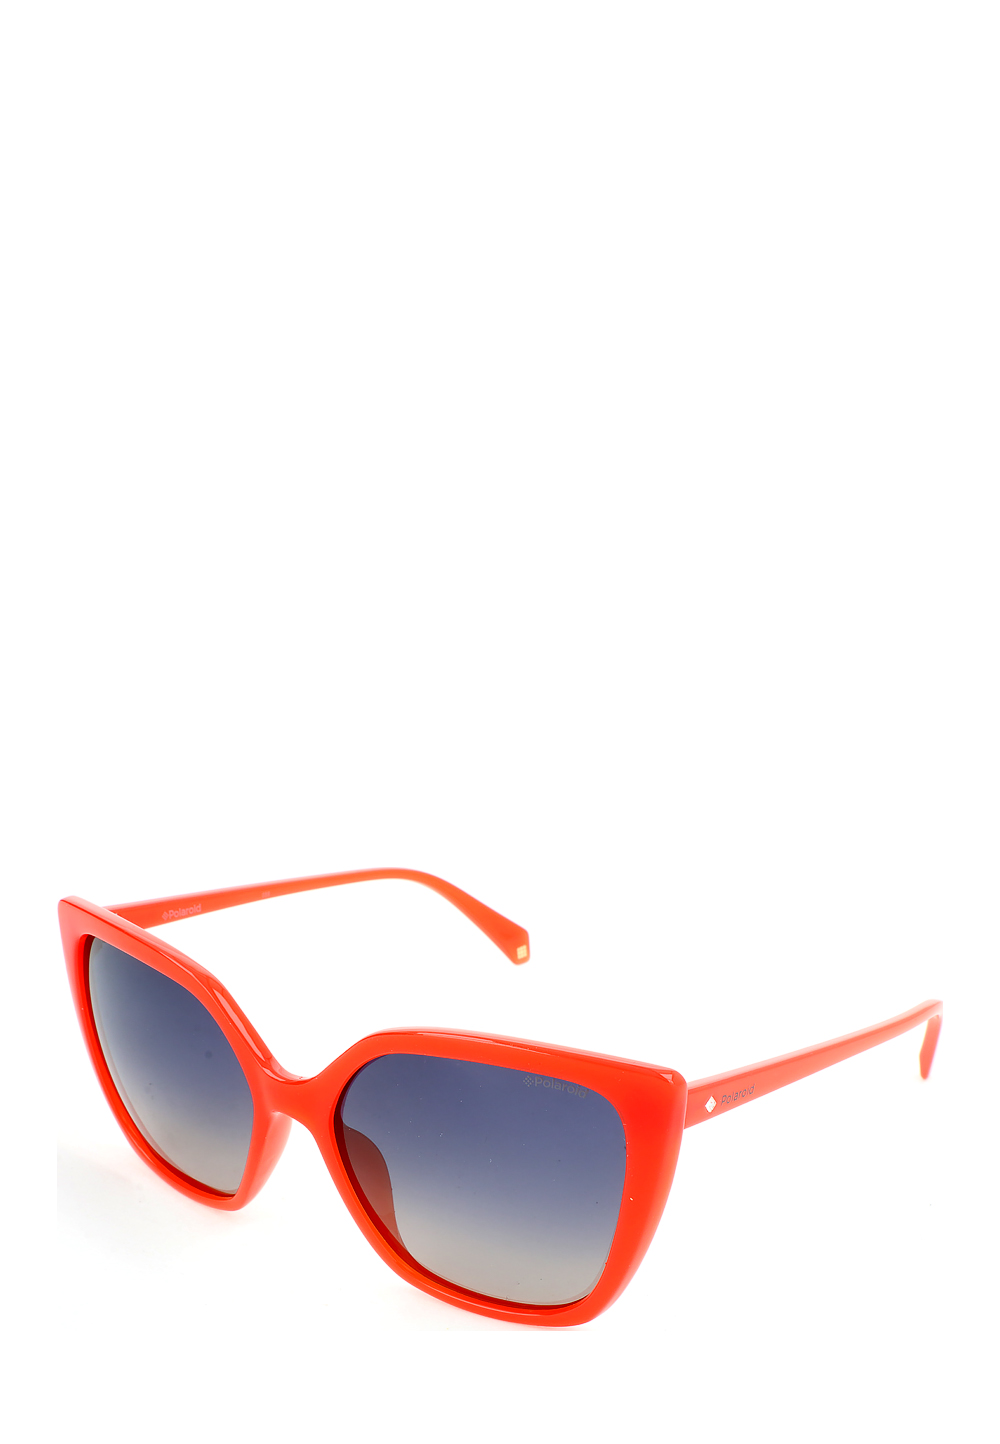 Sonnenbrille Pld4065/S, polarized, Uv400, coral rot